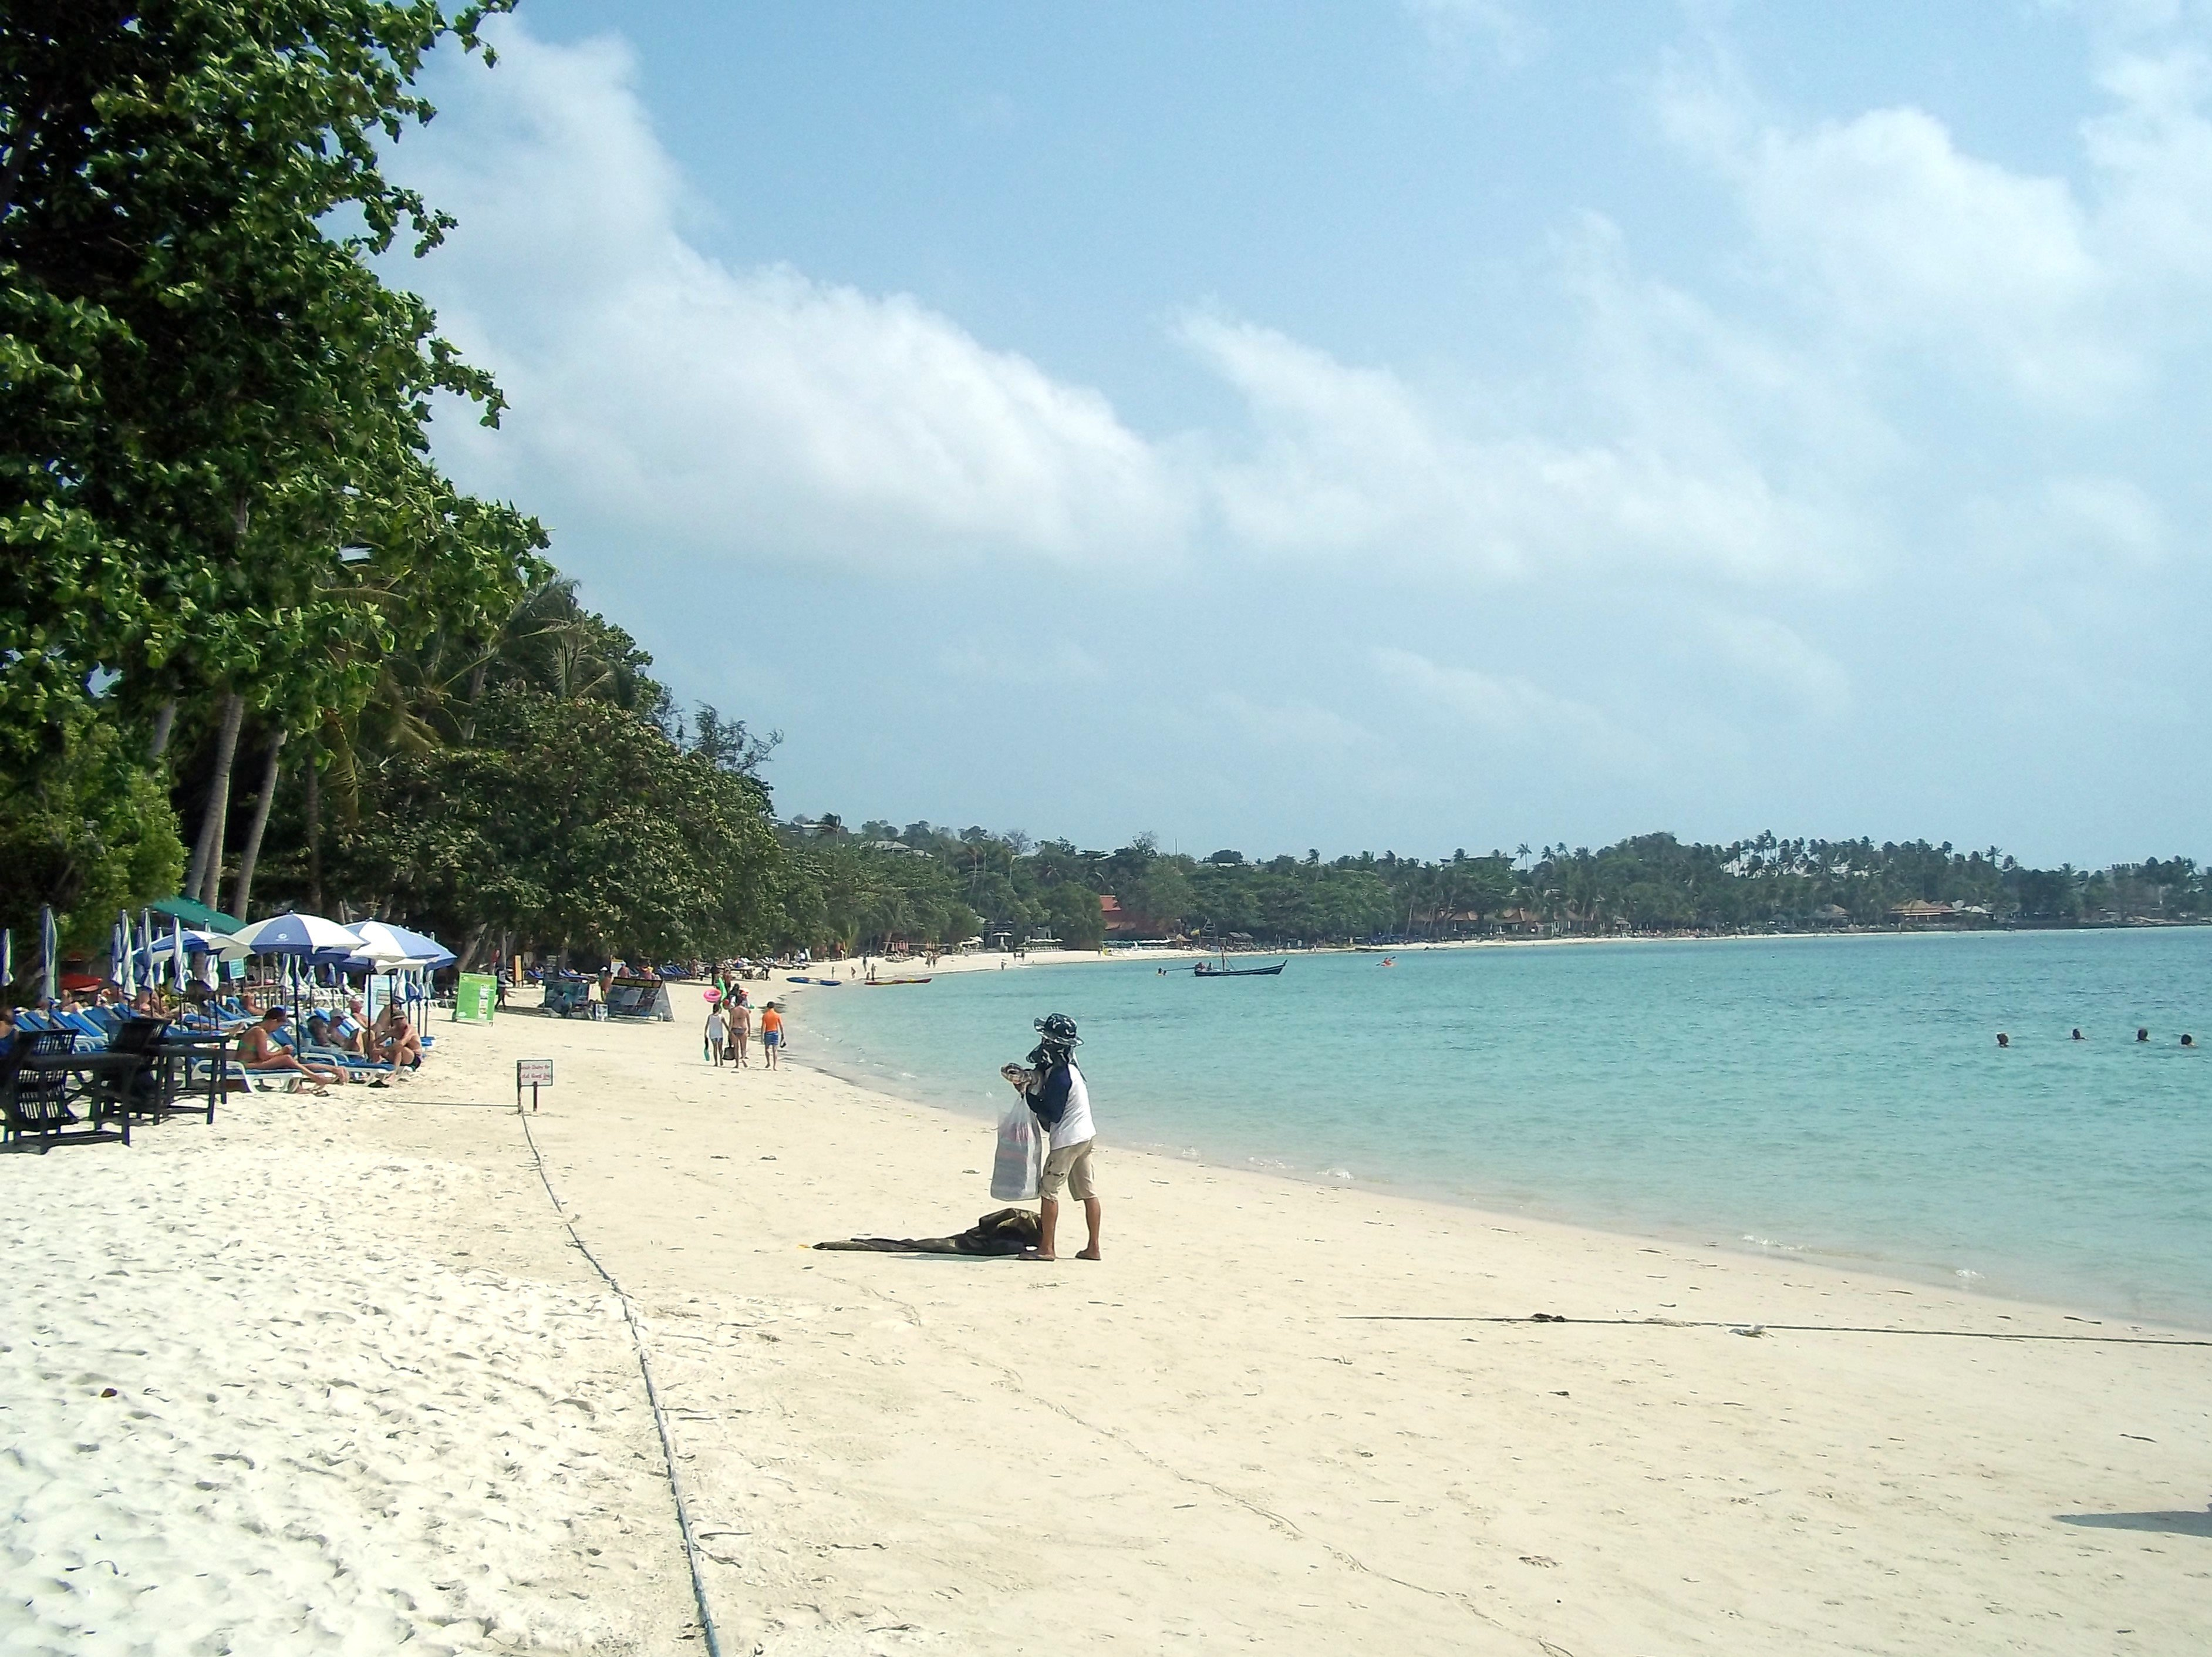 Chaweng Beach in Koh Samui